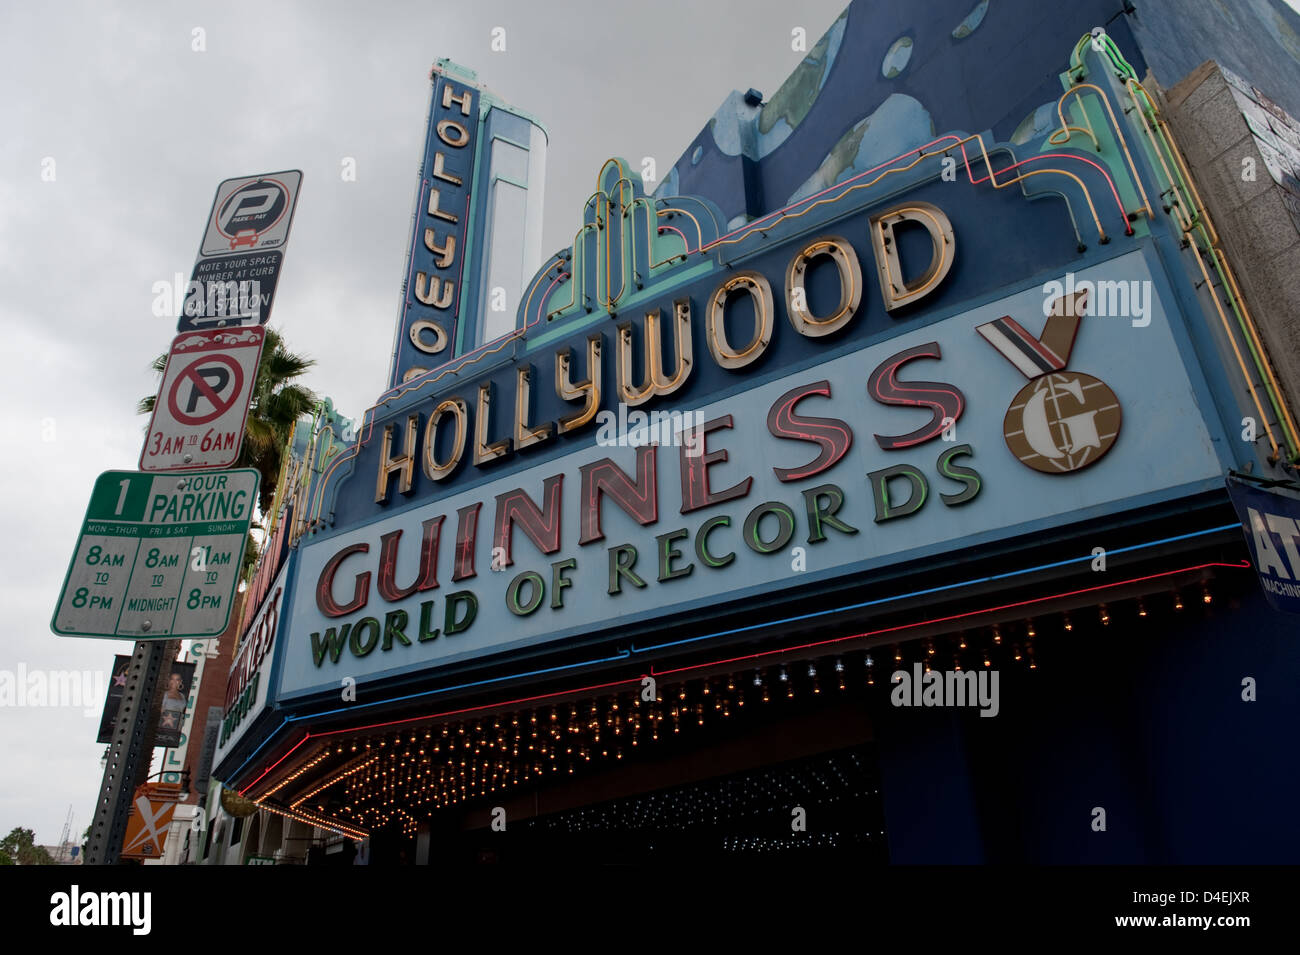 Los Angeles, California, Hollywood Boulevard, Hollywood Guinness World of Records - Stock Image